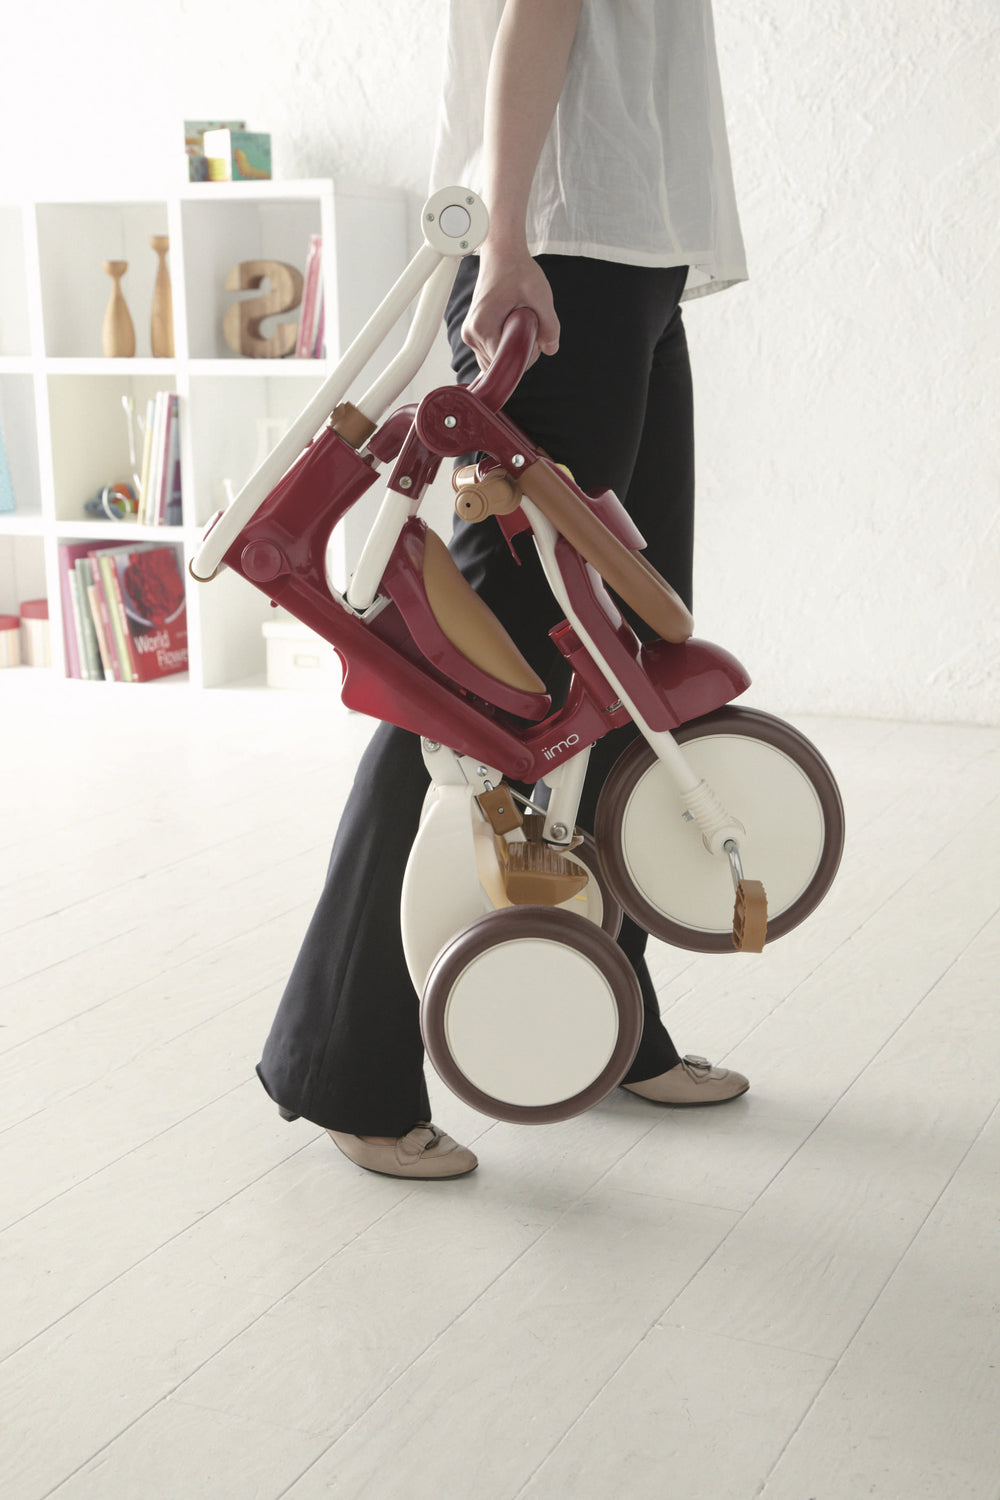 iimo 3-in-1 Foldable Tricycle #2 - Eternity Red